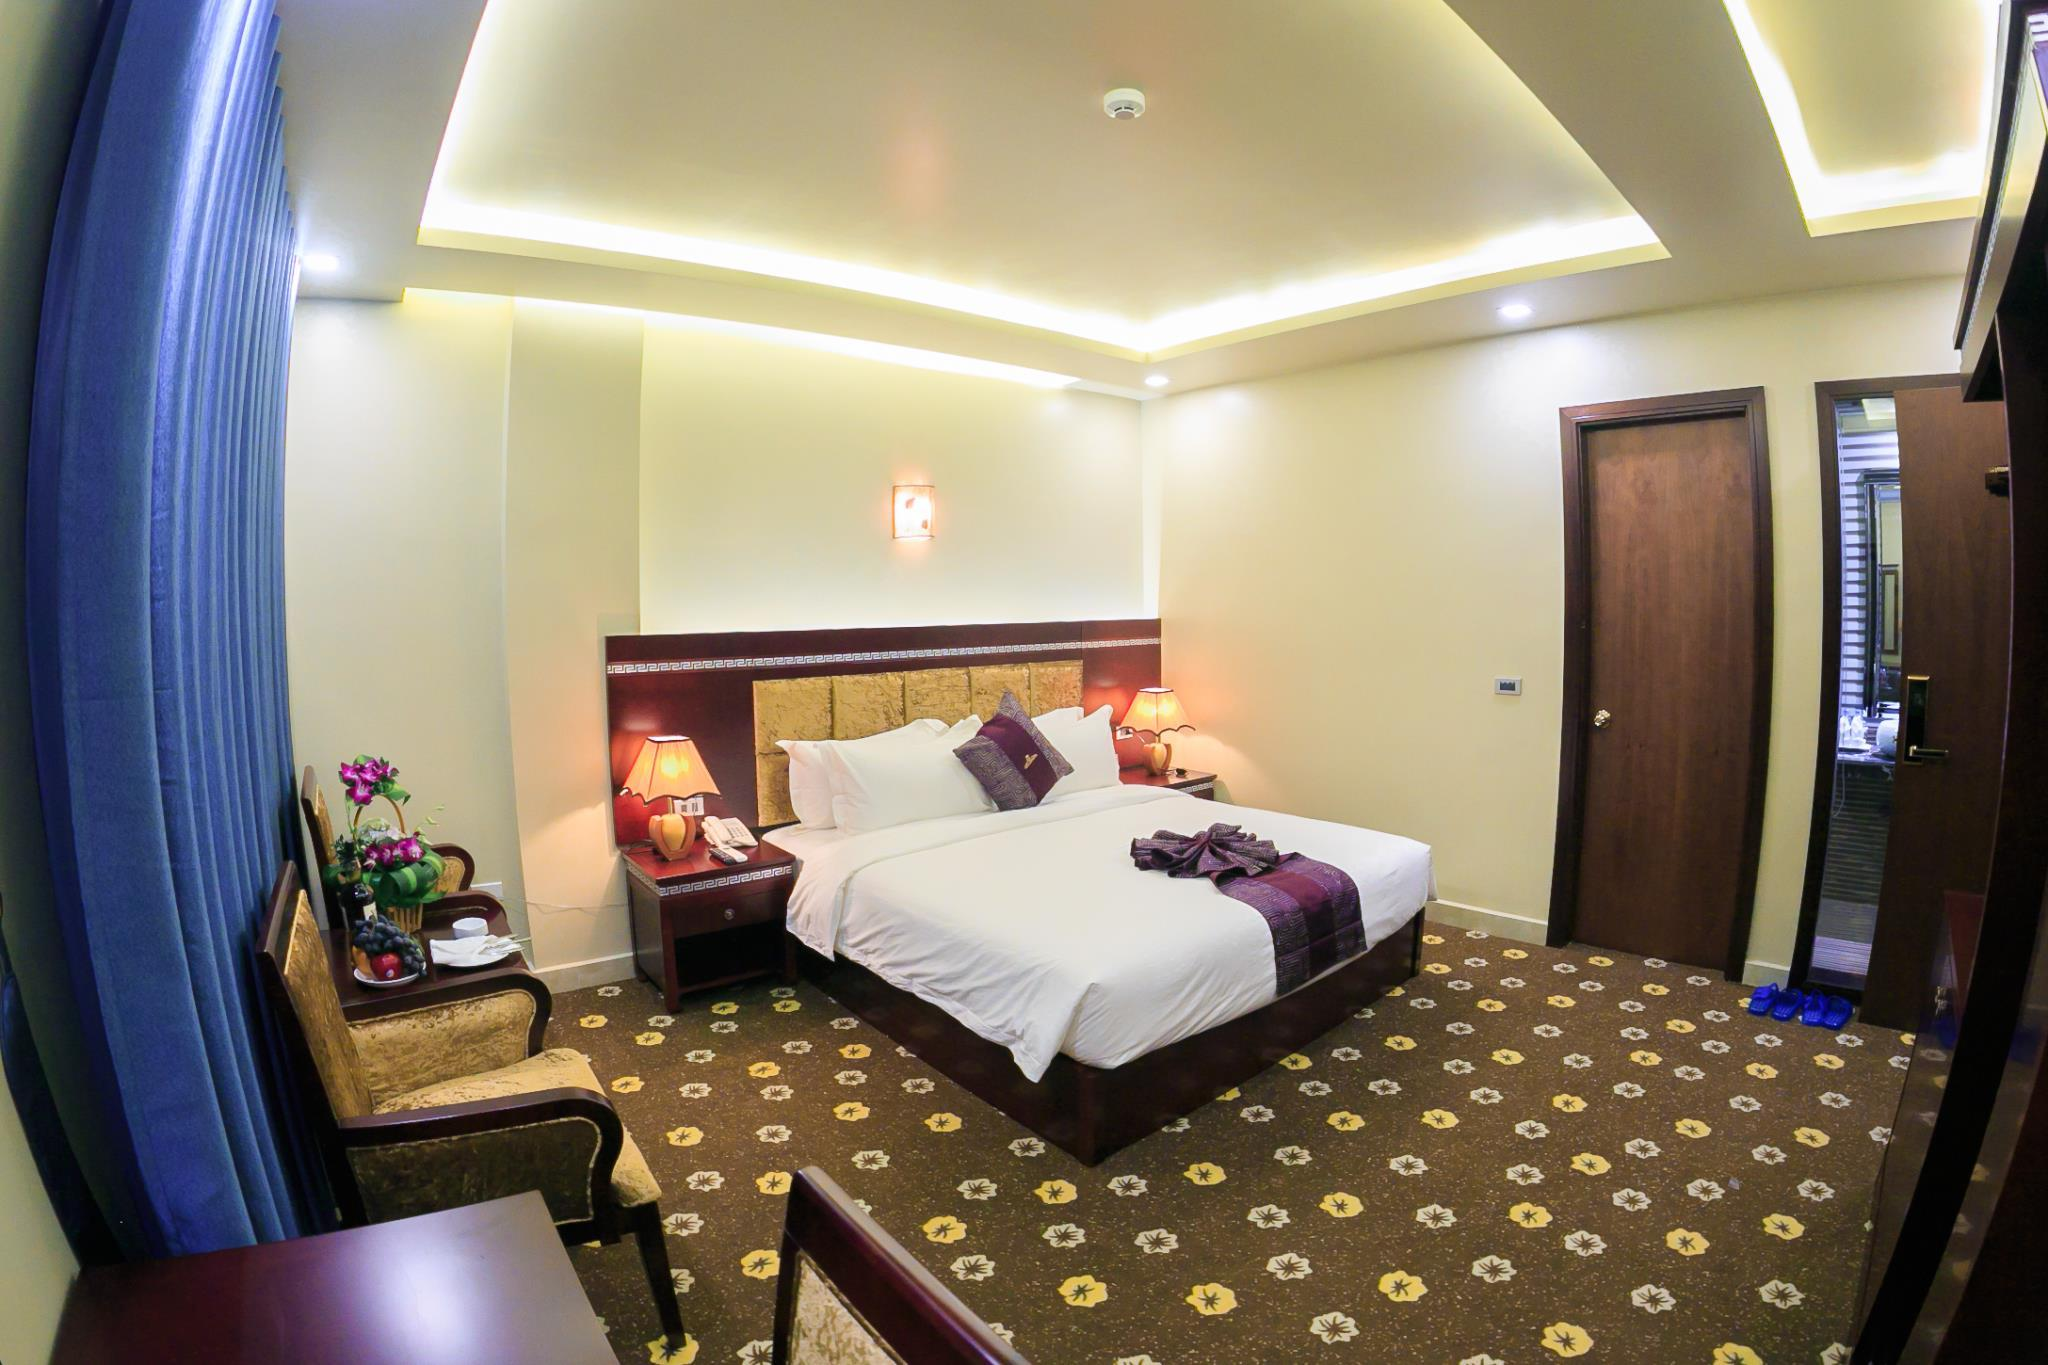 Gallant Hotel 168, Hải An